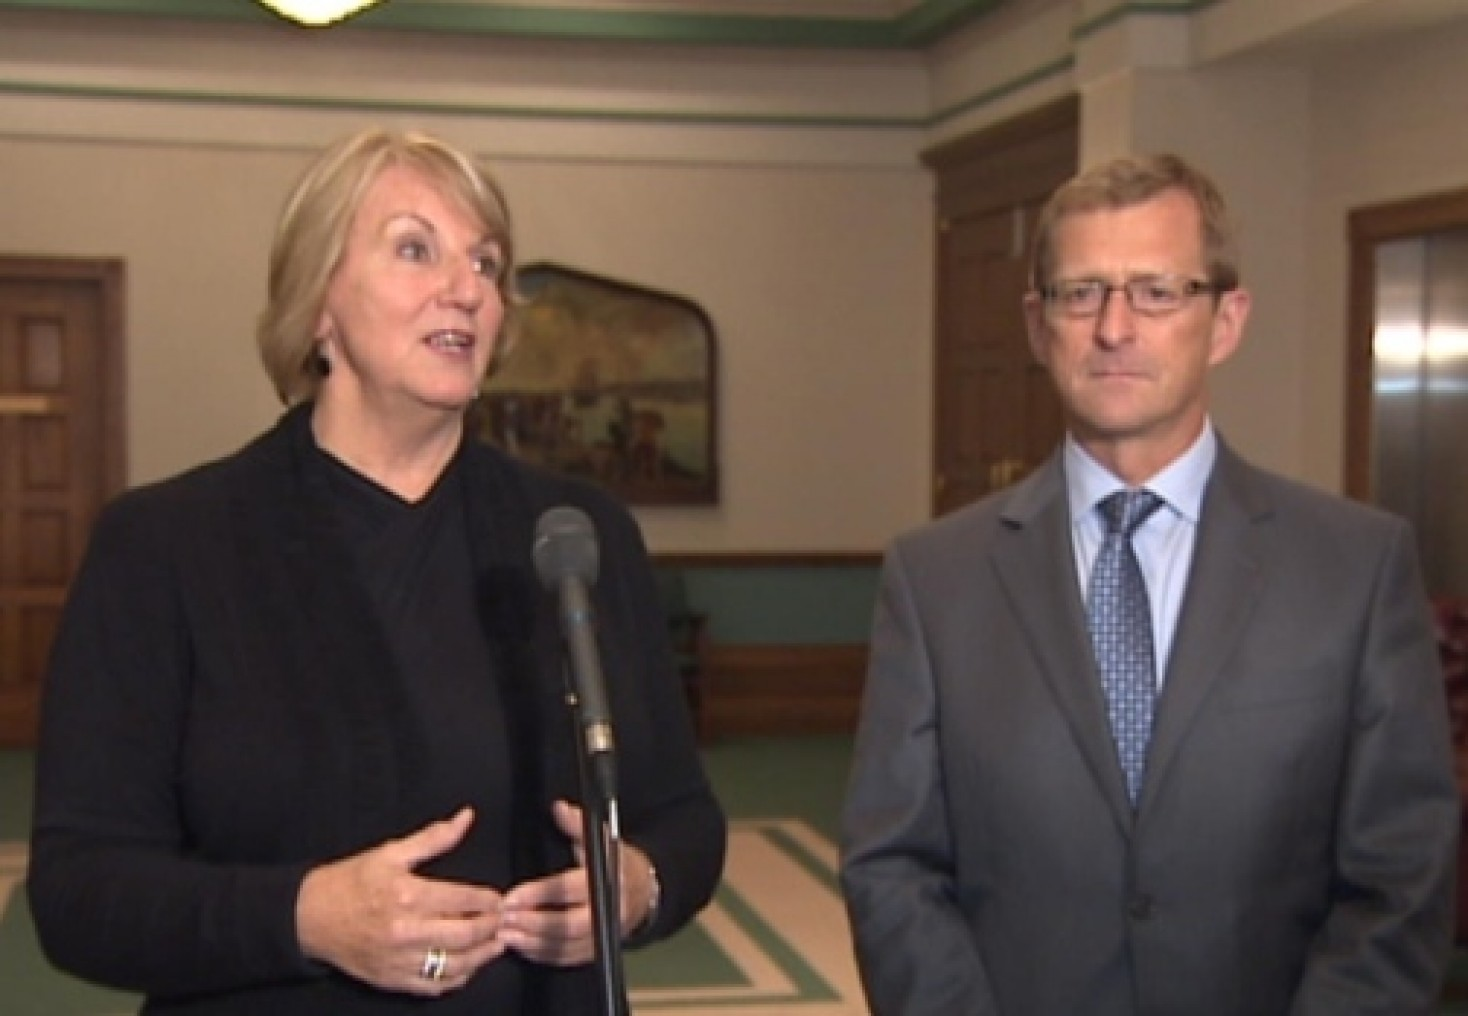 Provincial government initiates review of public sector pensions after multi-year lobby by NLEC